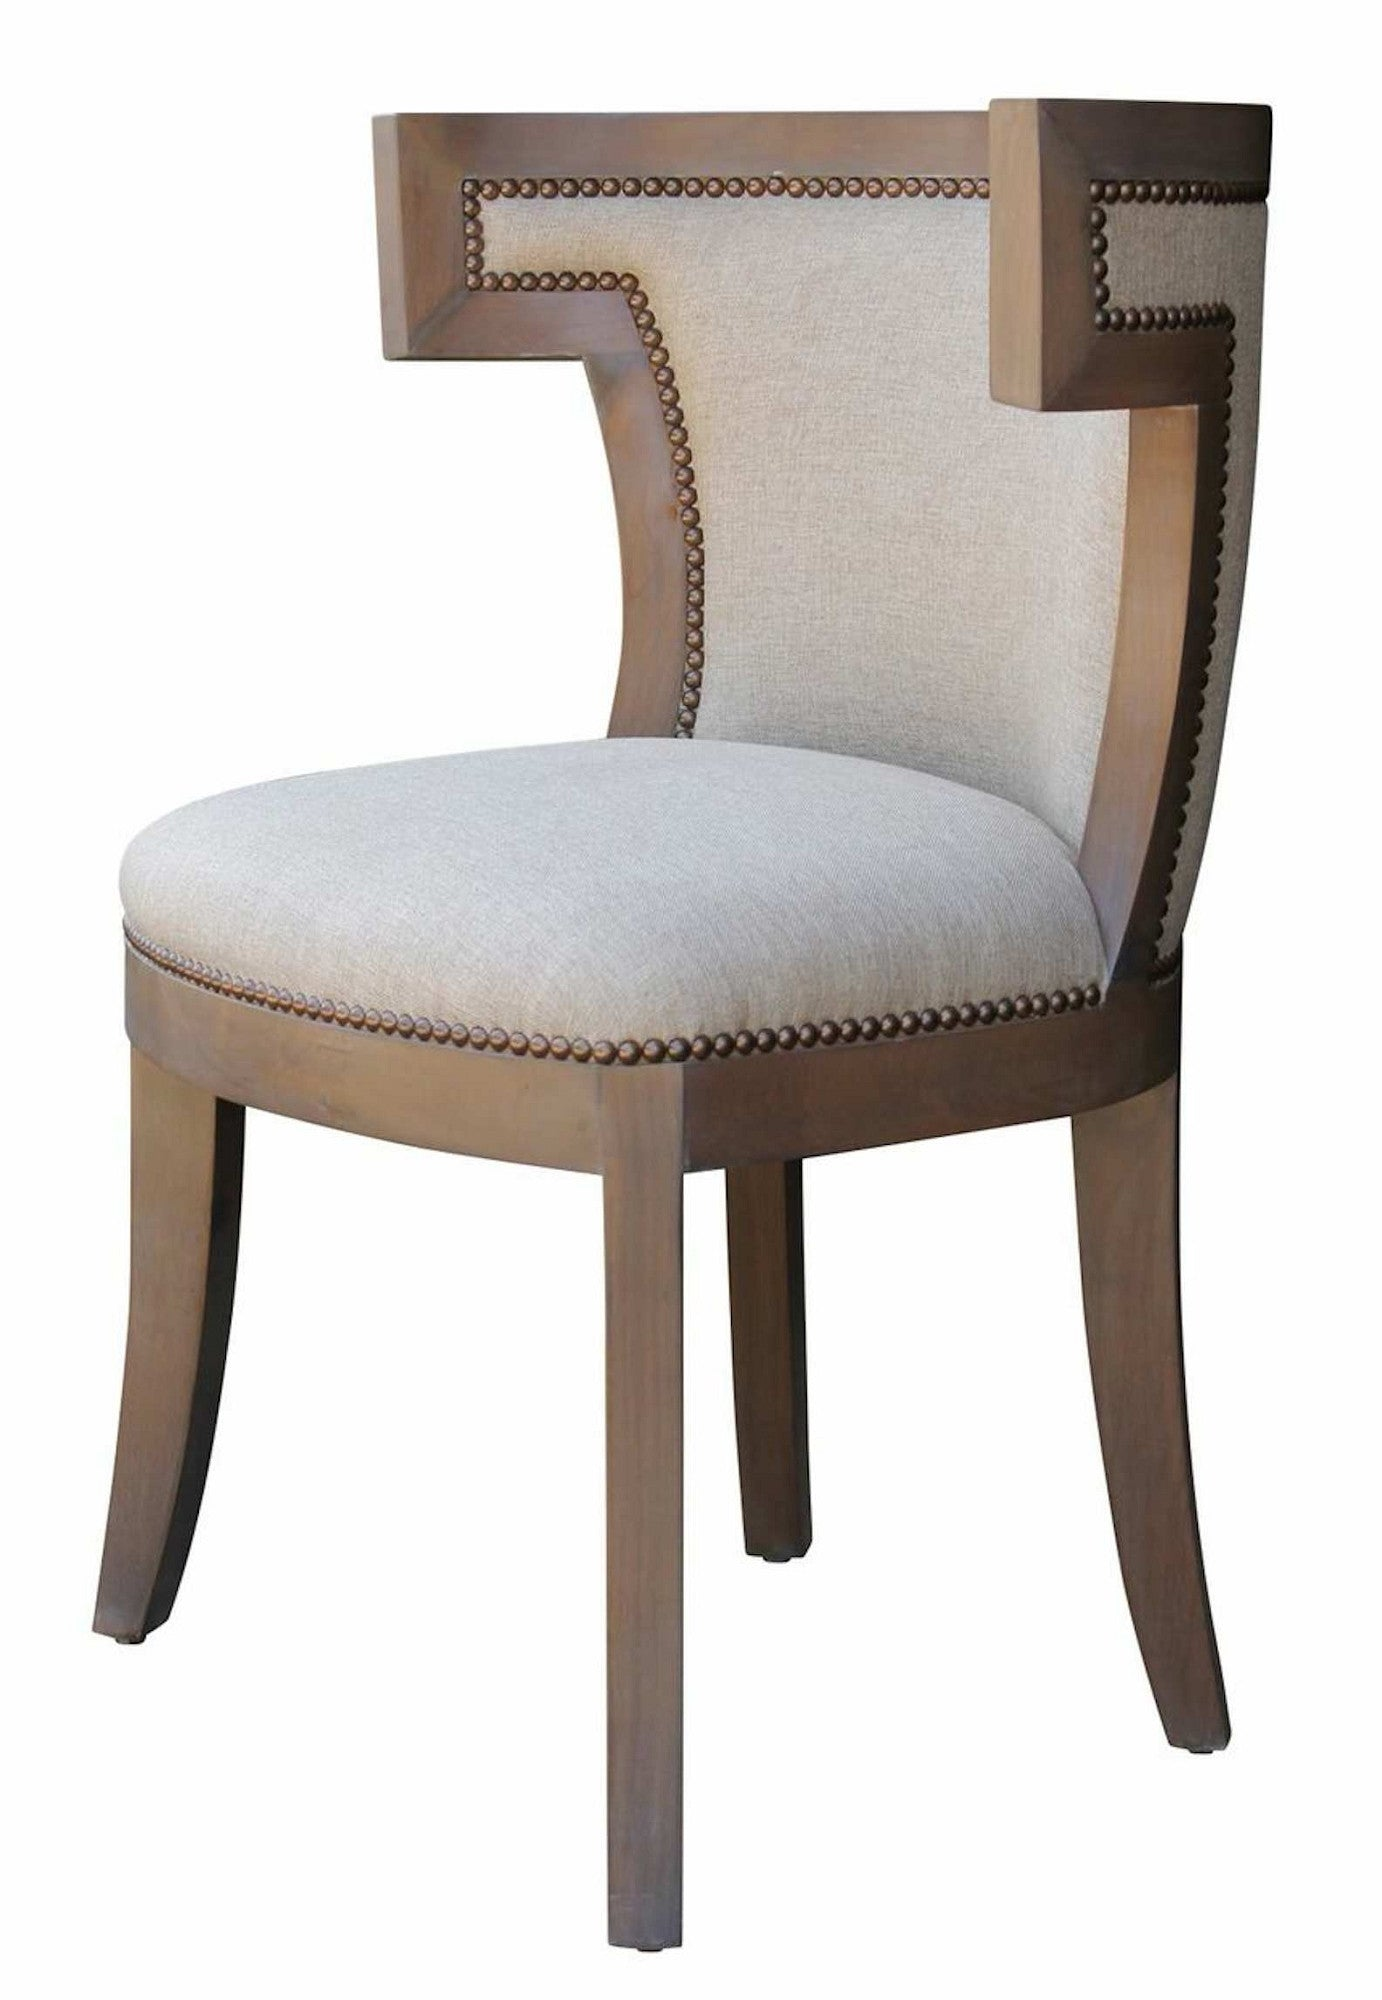 Barrymore Dining Chair dramatic barrel back